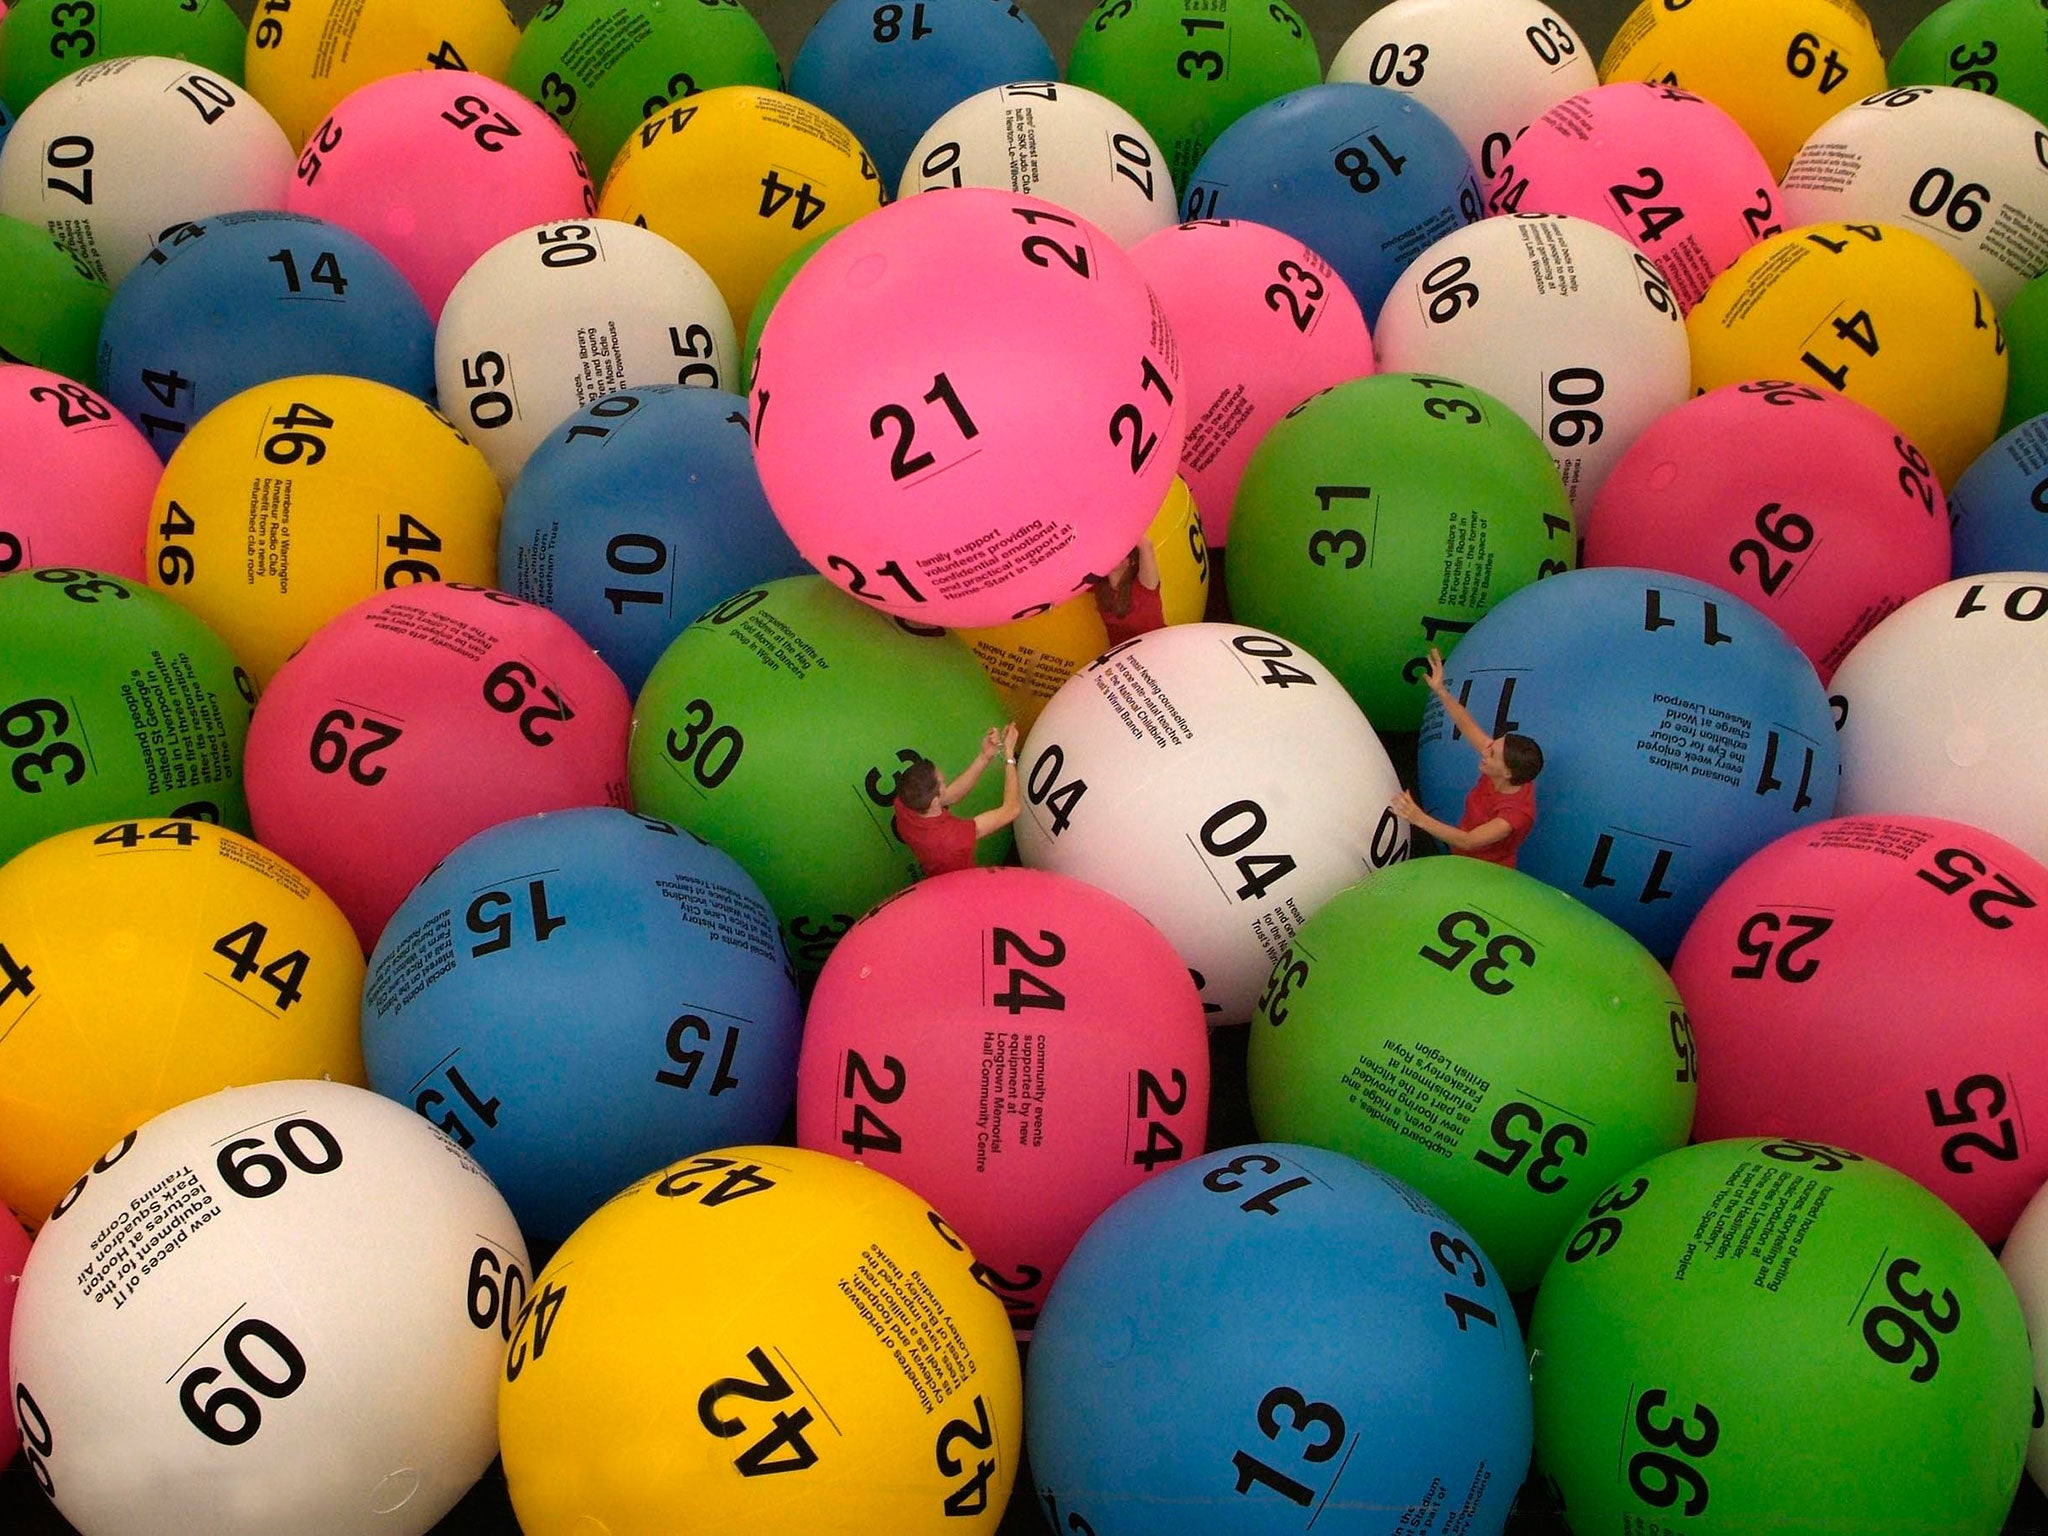 National Lottery: What are the most drawn Lotto numbers? | The Independent  | The Independent